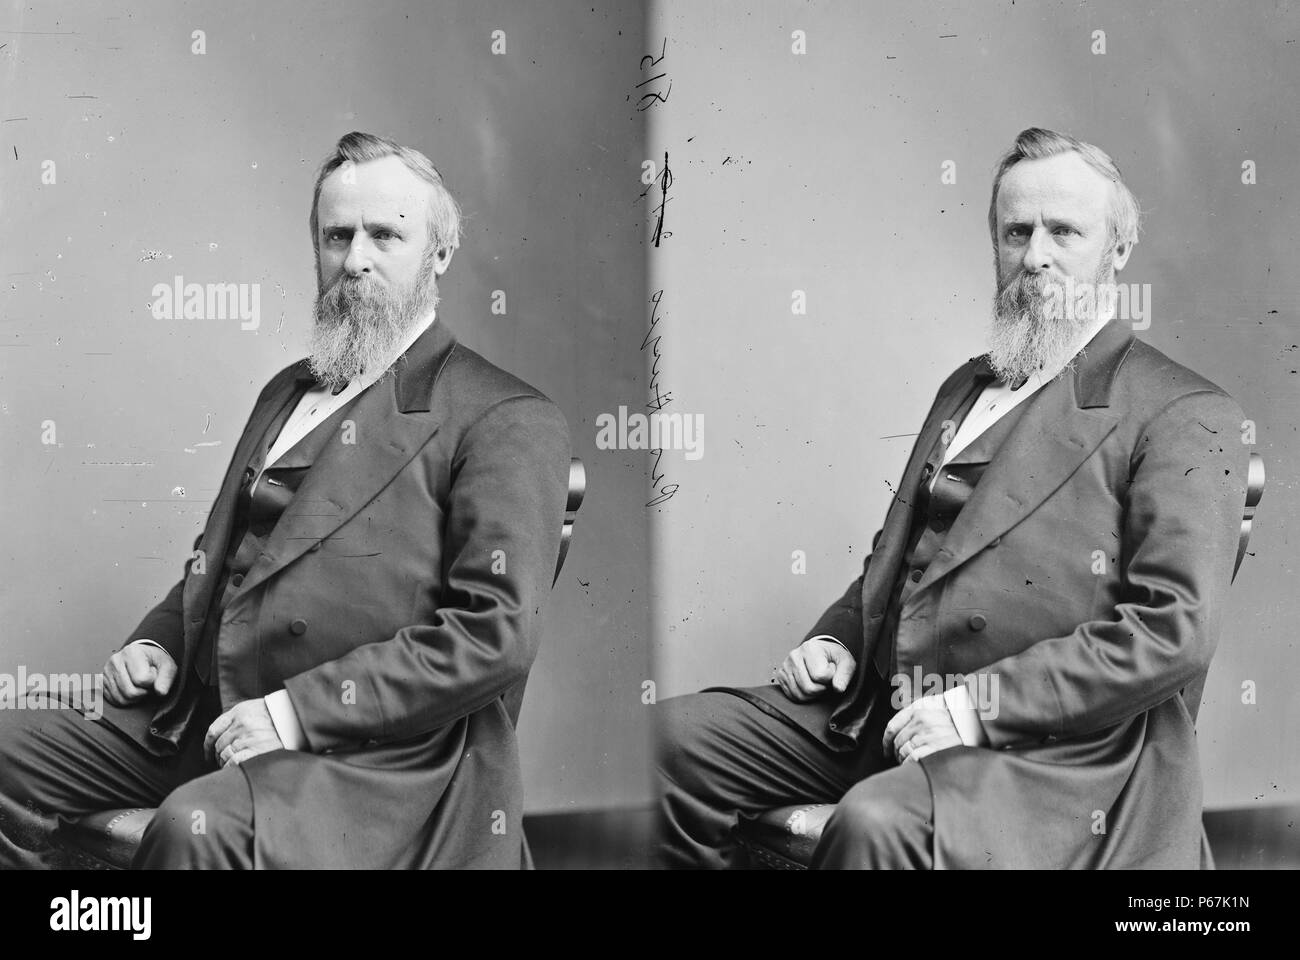 President rutherford hayes stock photos president rutherford hayes